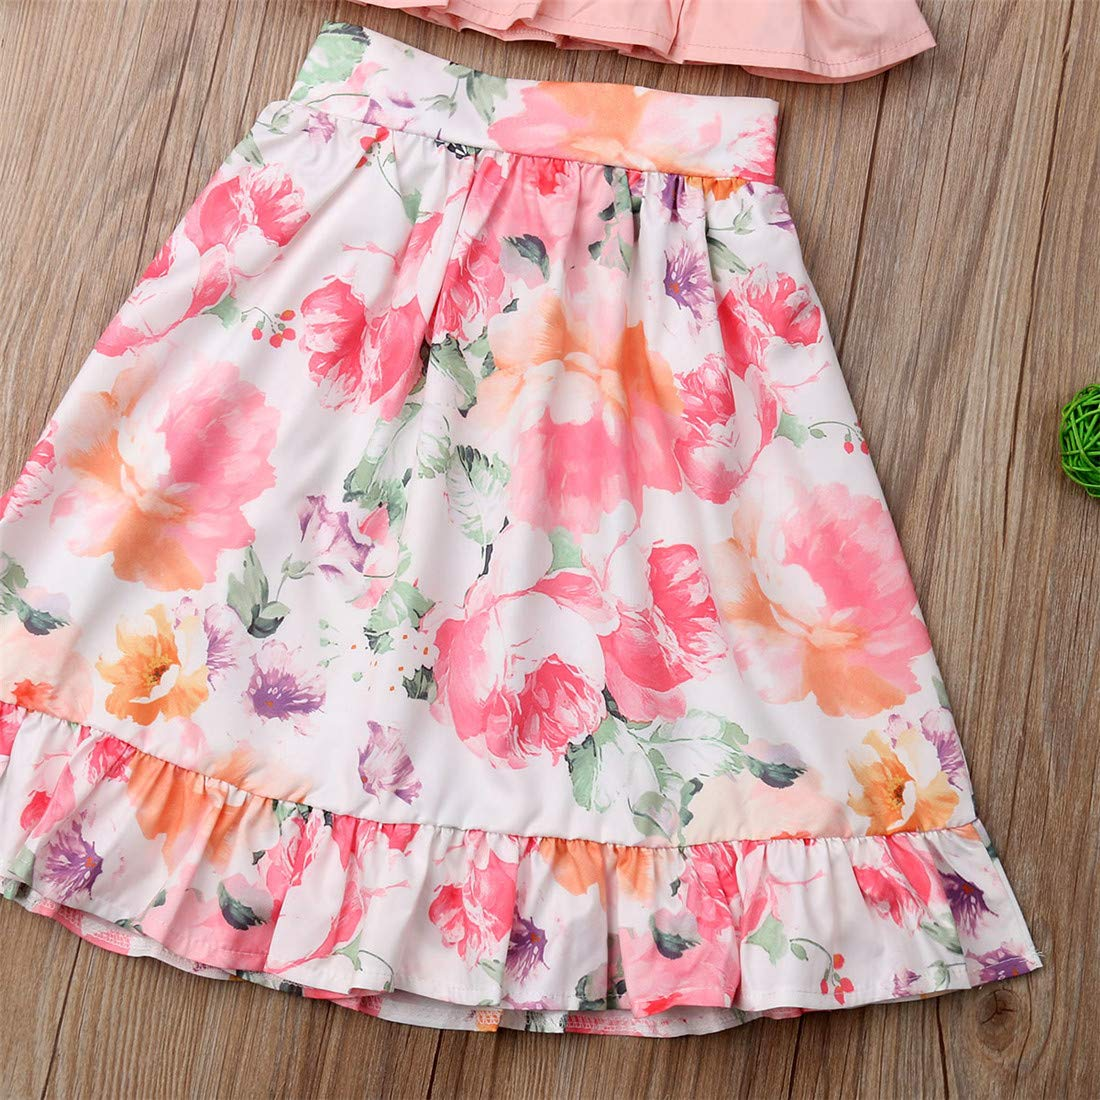 Floral Ruffled Long Skirts Tutu Dress Outfit Set Summer Clothes Toddler Baby Girls Camisole Buttons Shirt Top